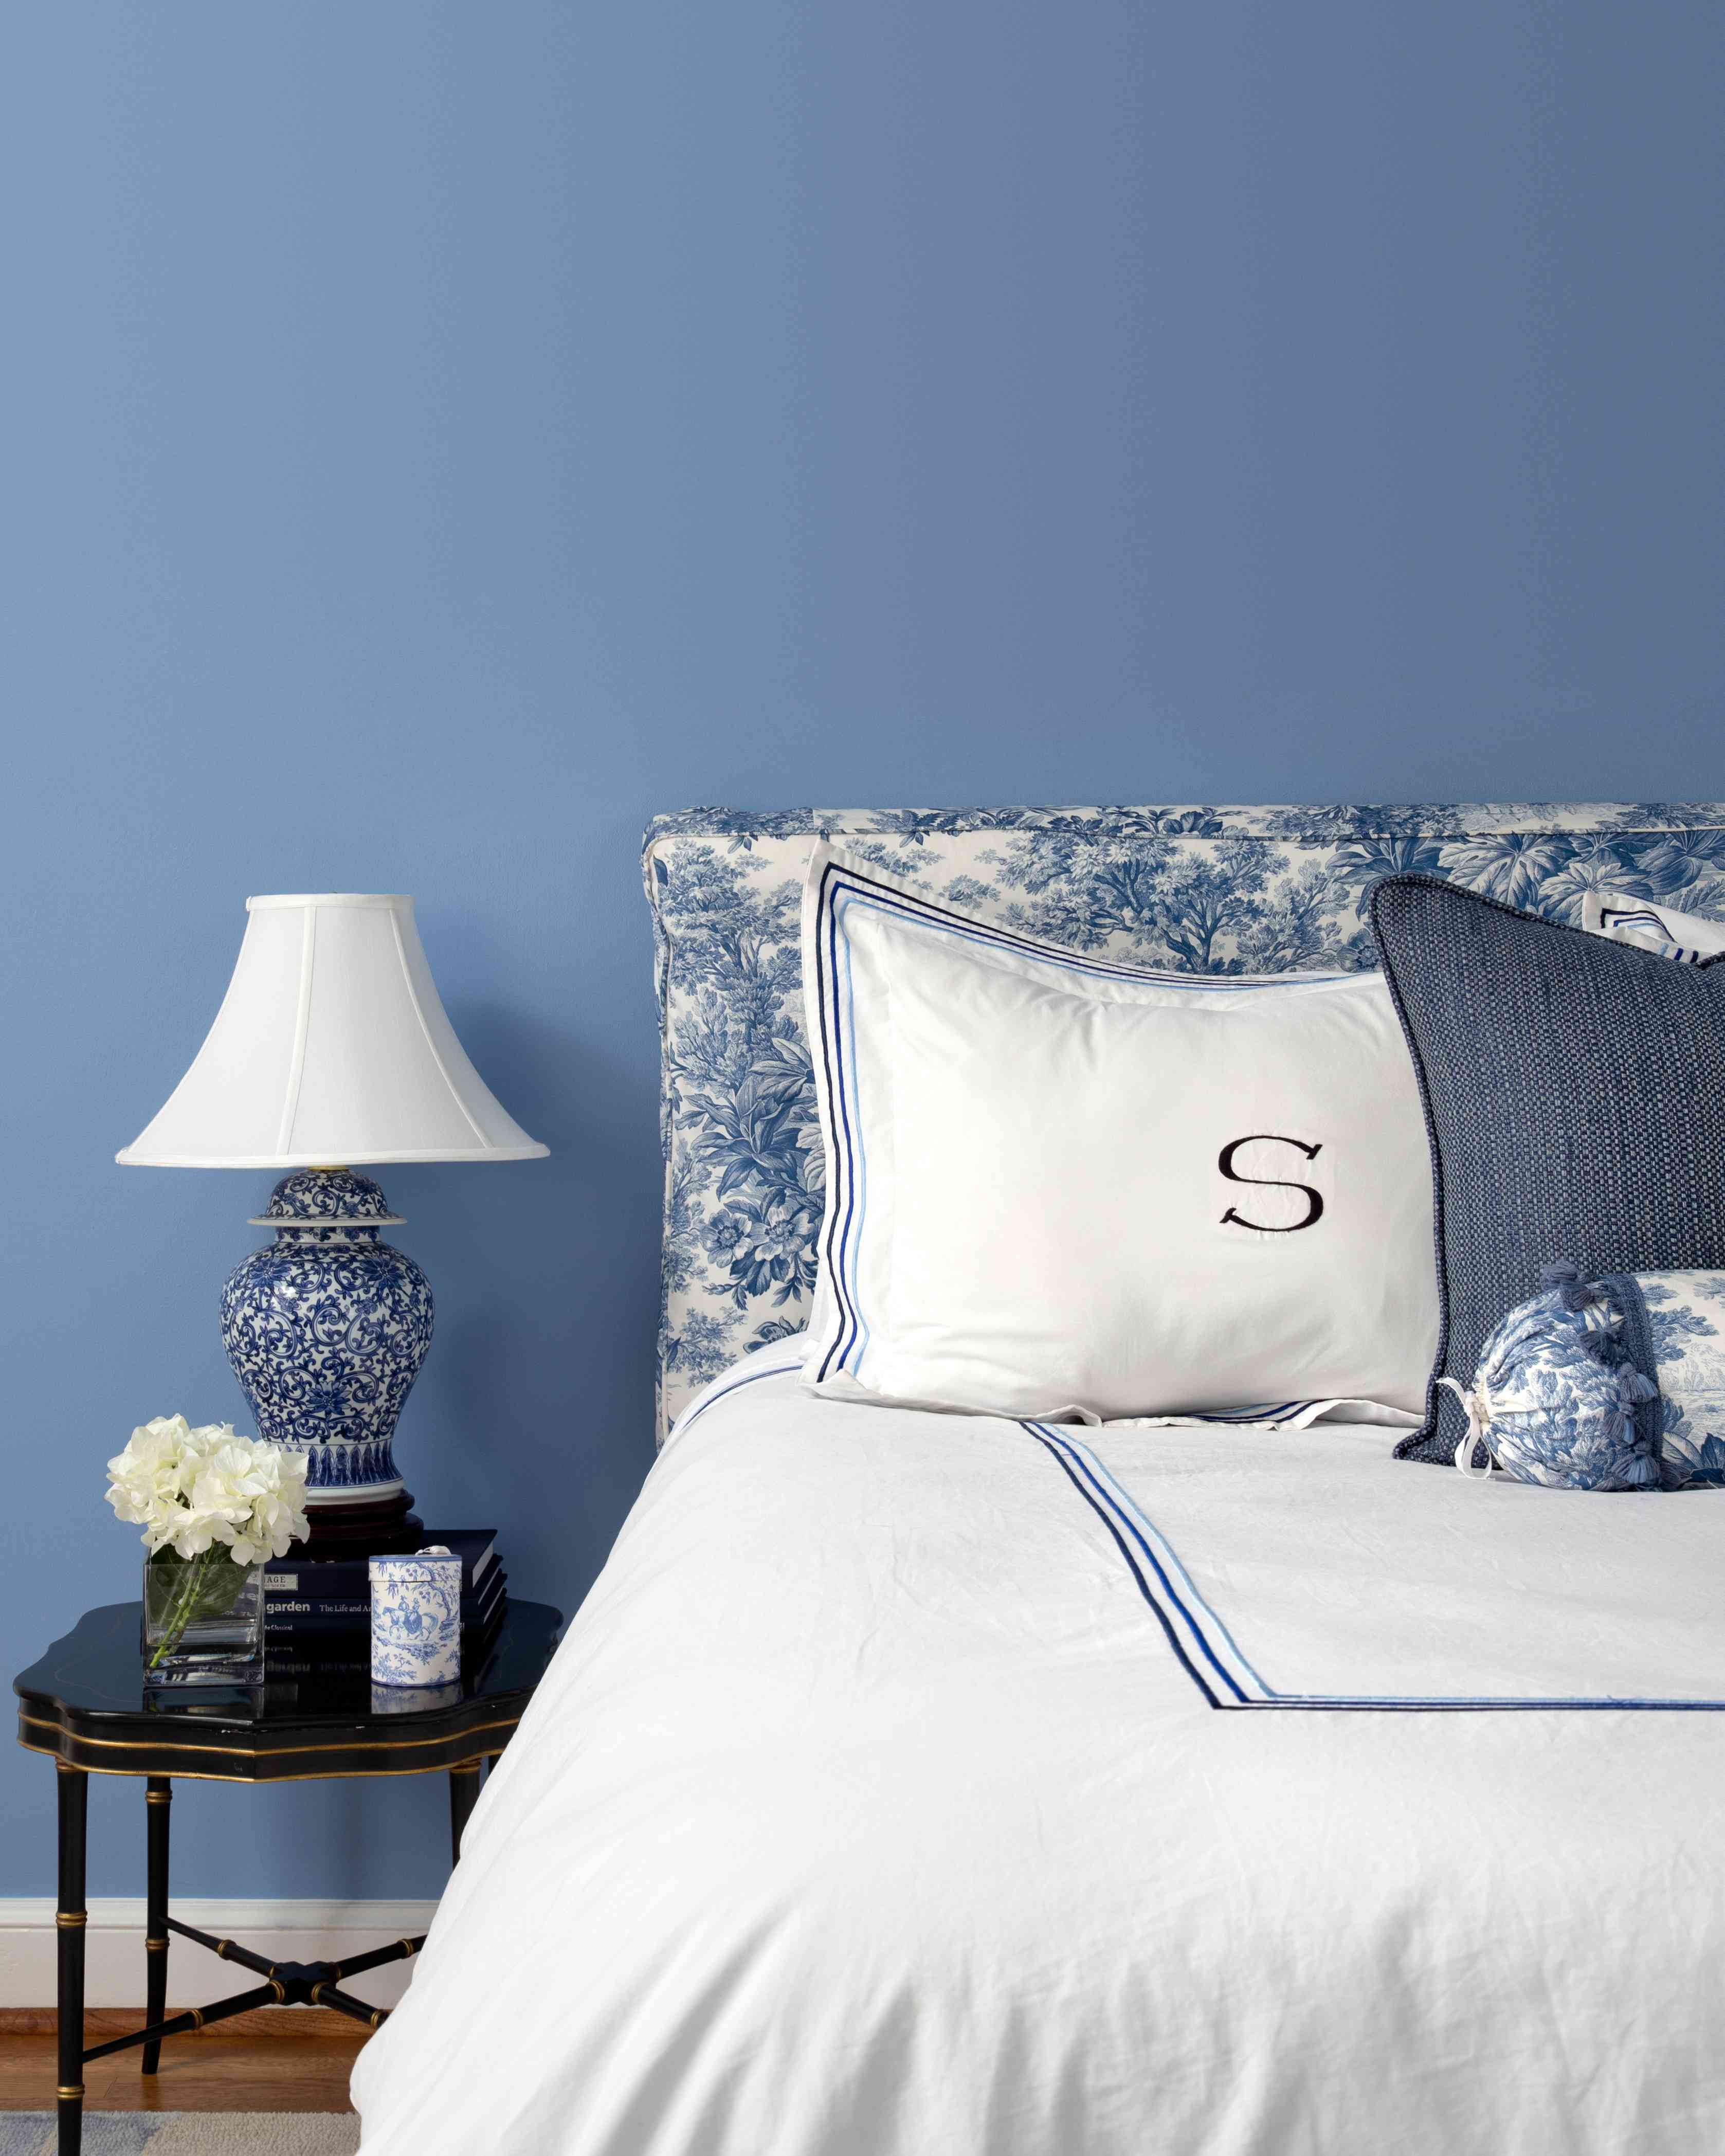 Monogram pillowcase with blue chinoiserie accents